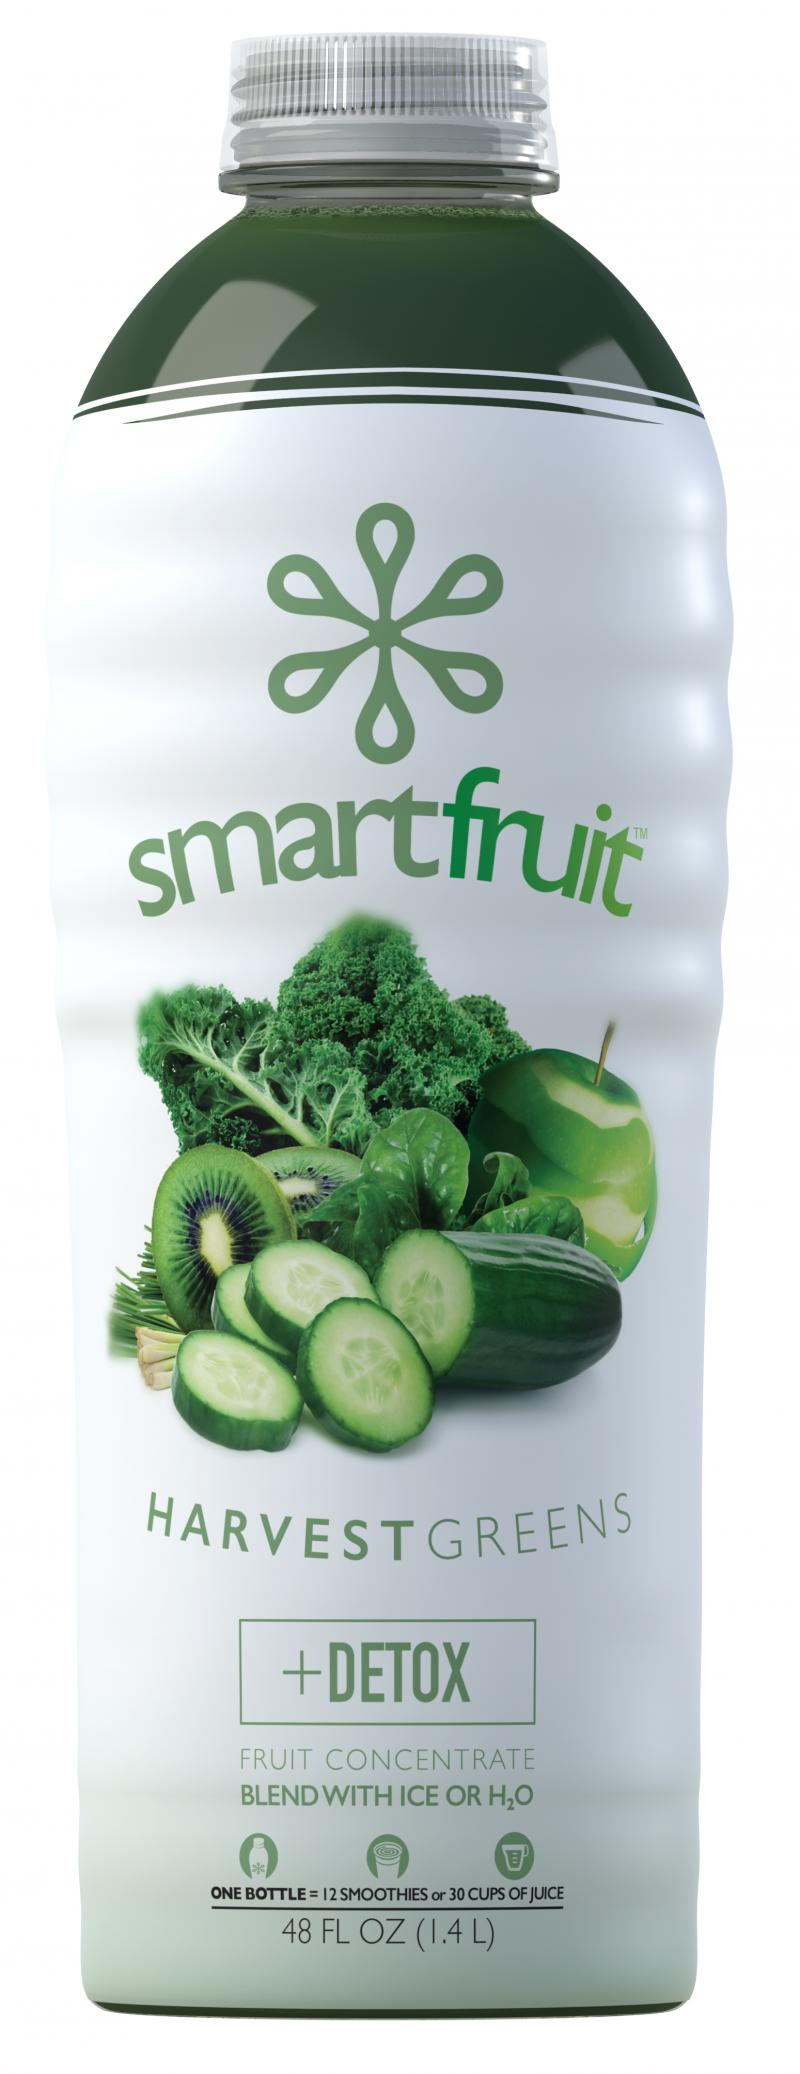 Harvest Greens +detox Fruit Concentrate Blend With Ice Or H2o